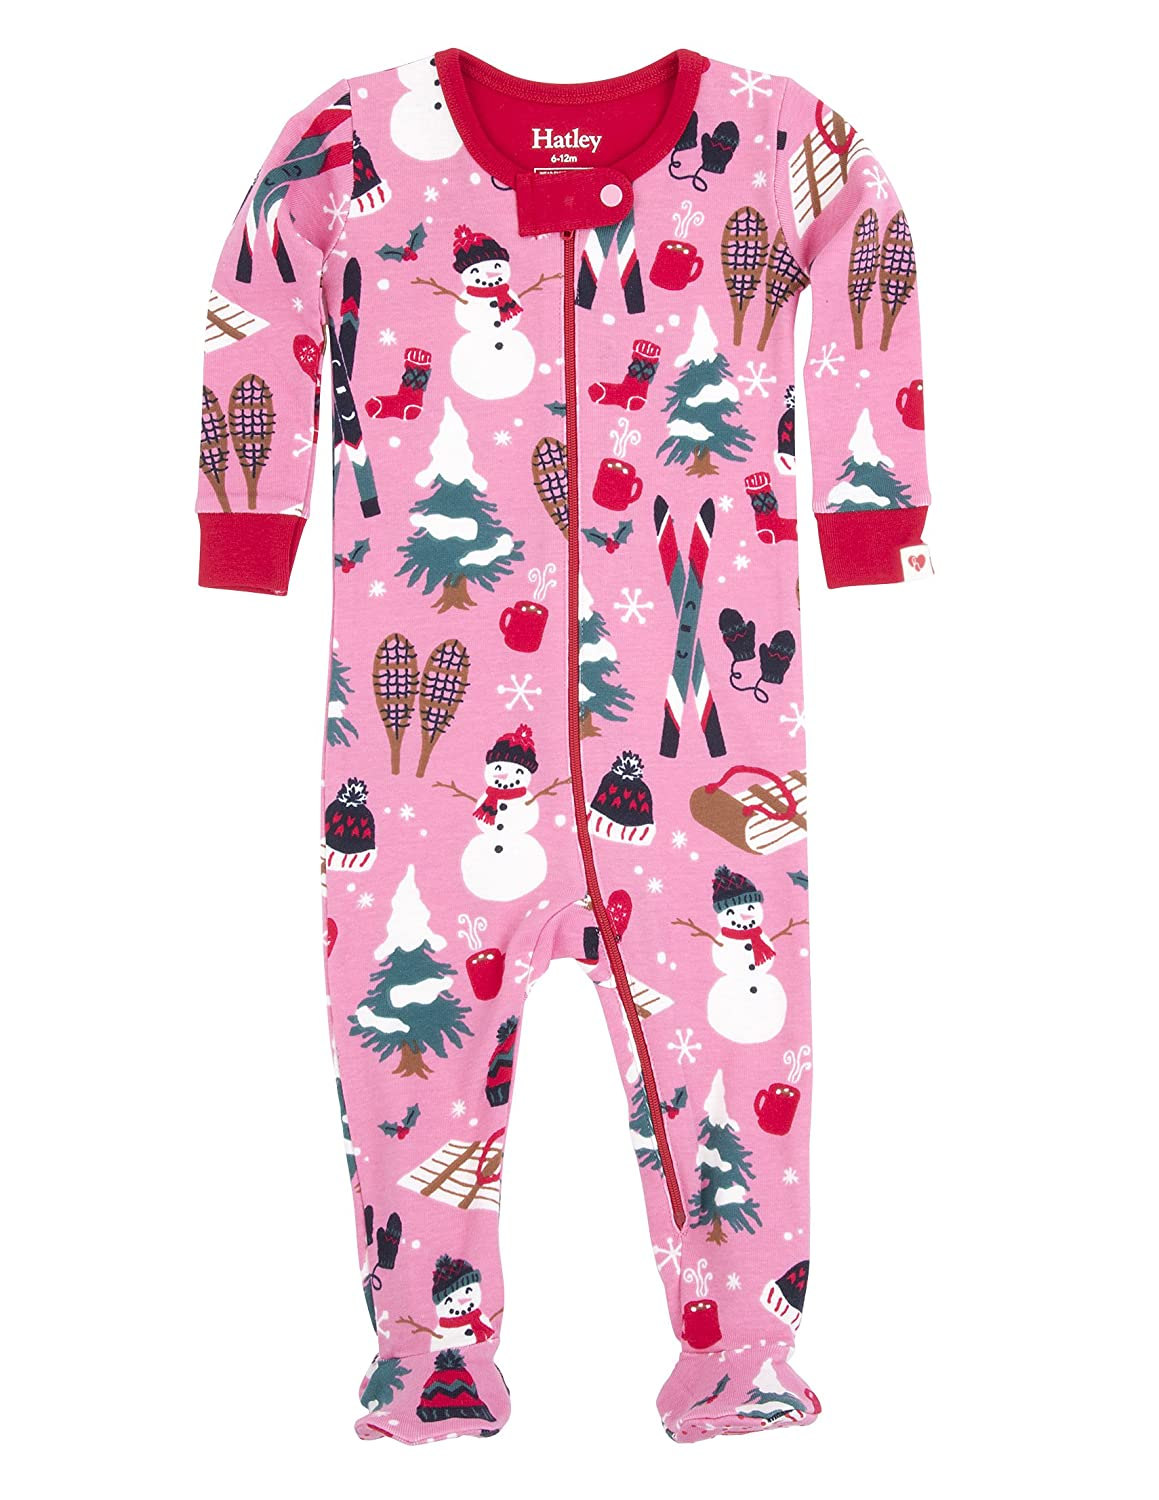 Hatley Baby Girls' Footed Coverall Vintage Holiday Footies DR5VACA132